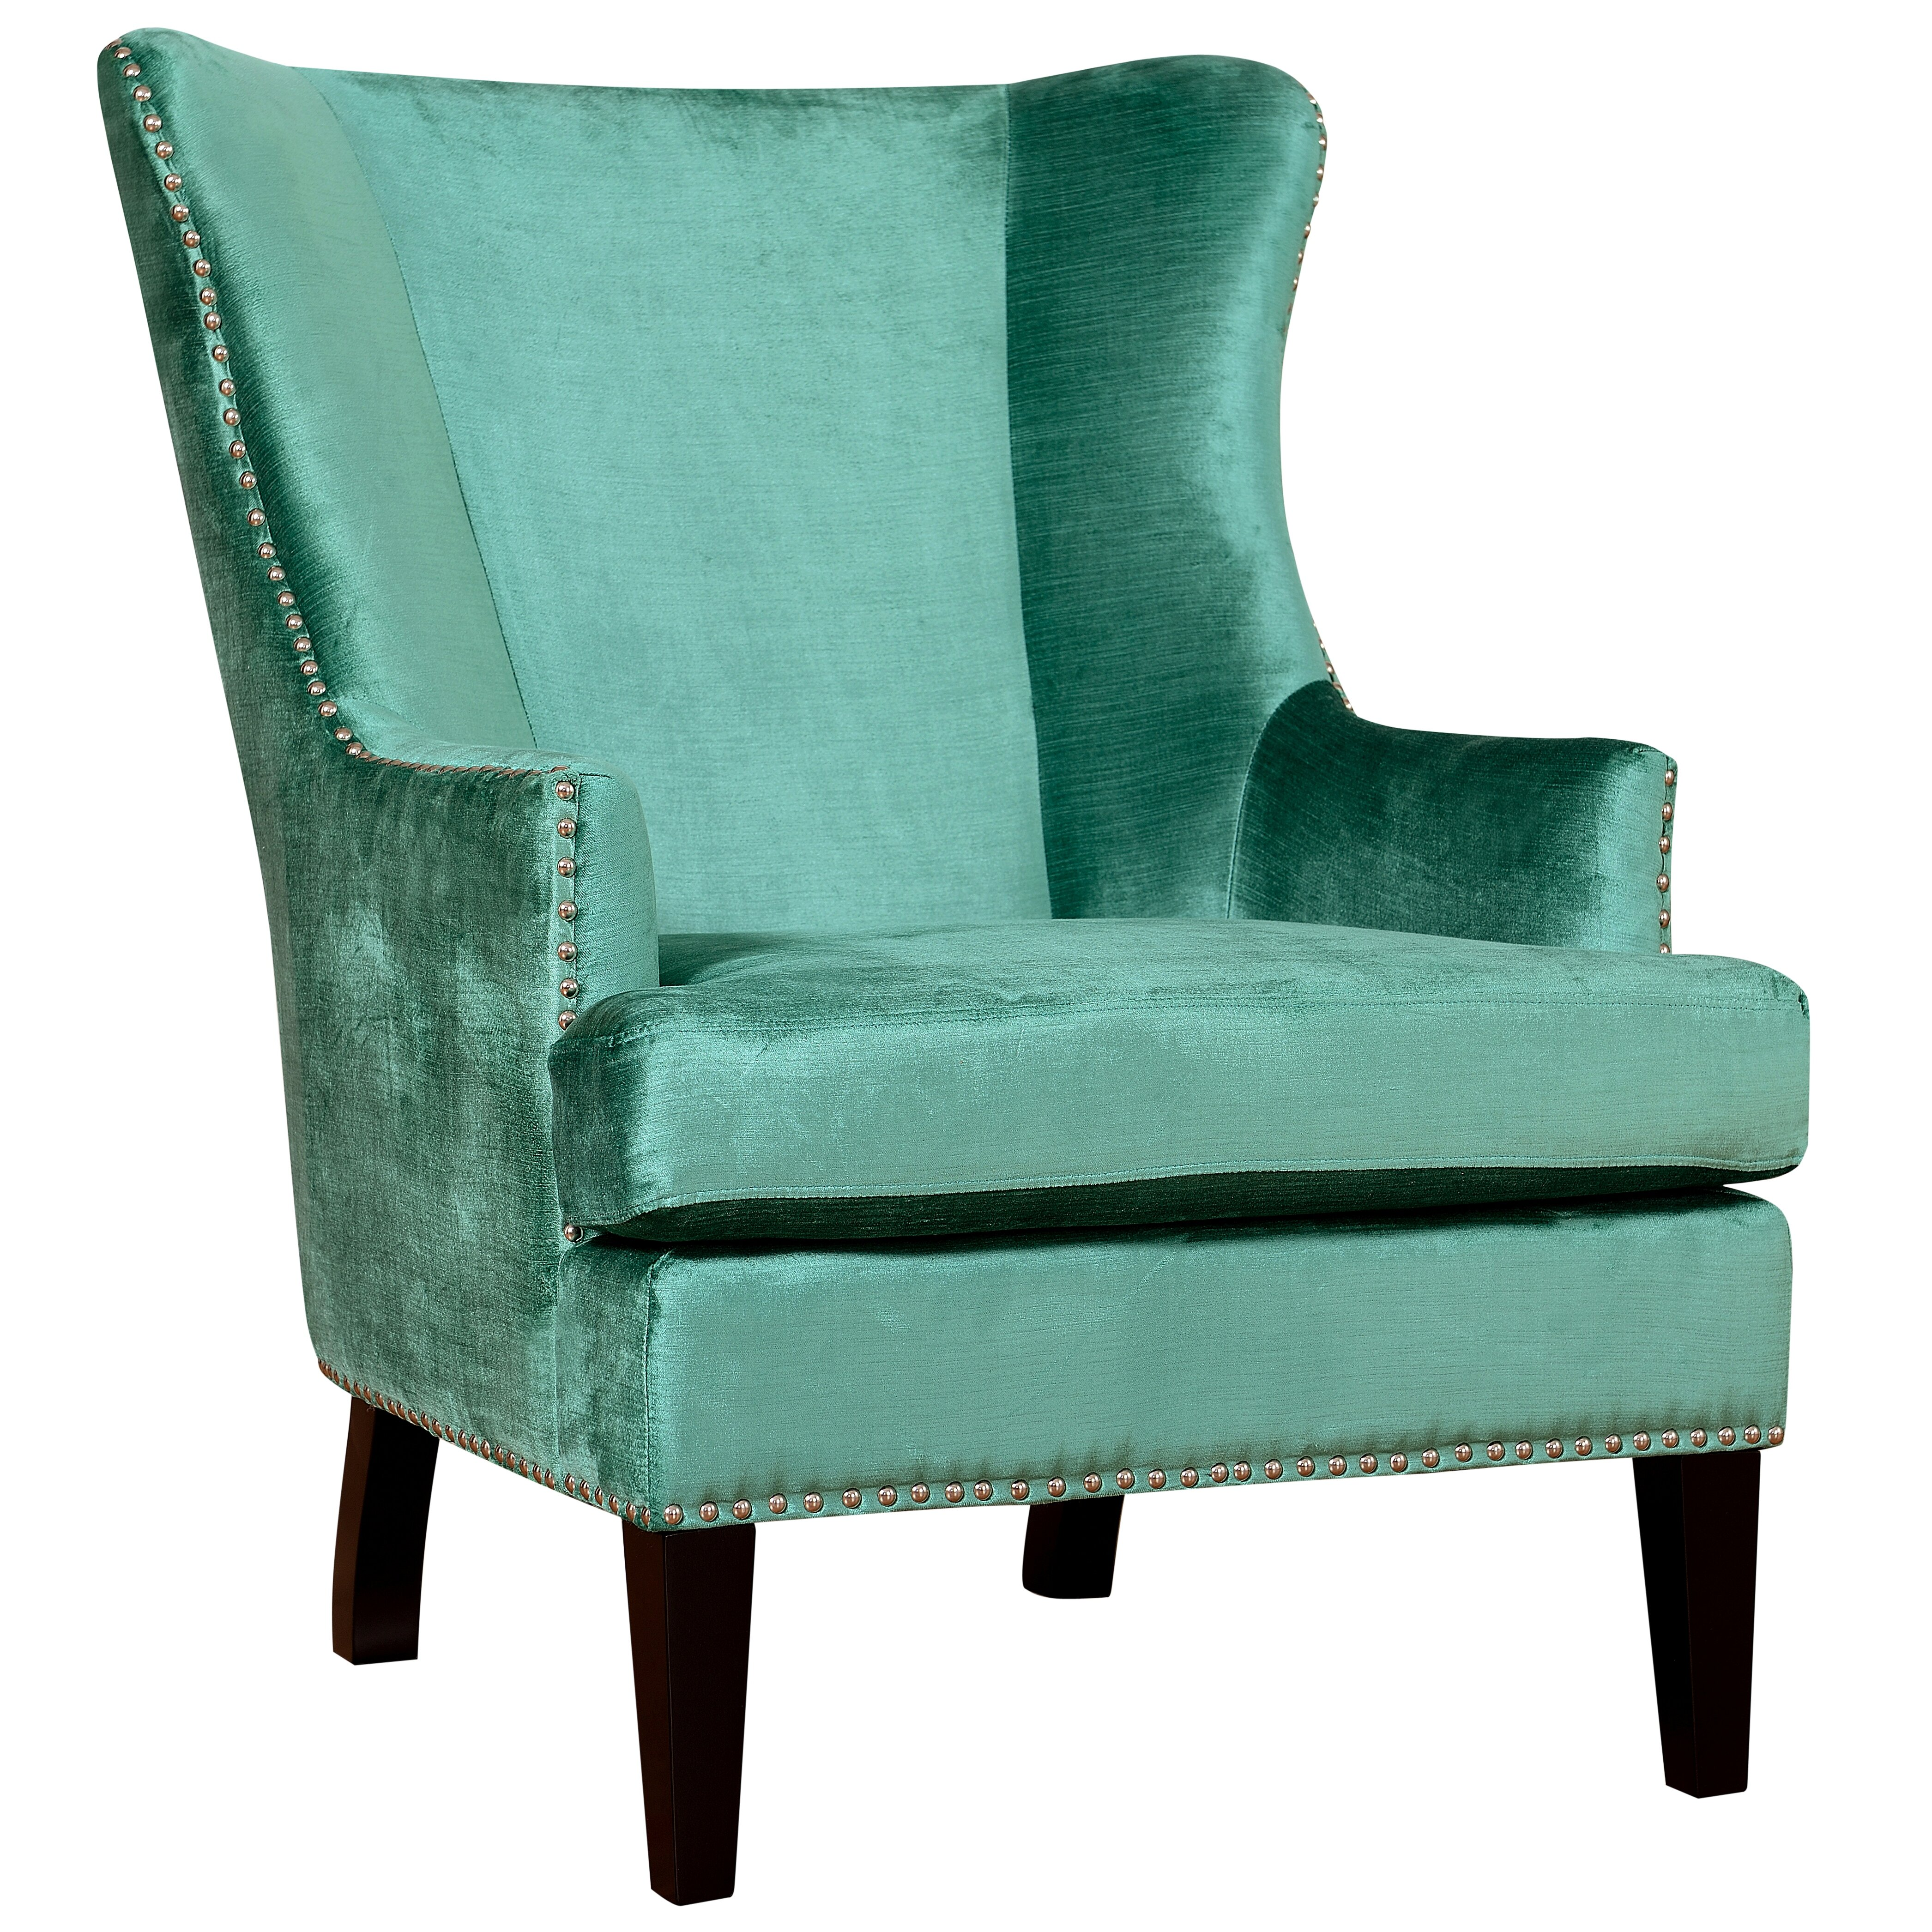 Tov soho wing chair reviews wayfair for Wingback chair